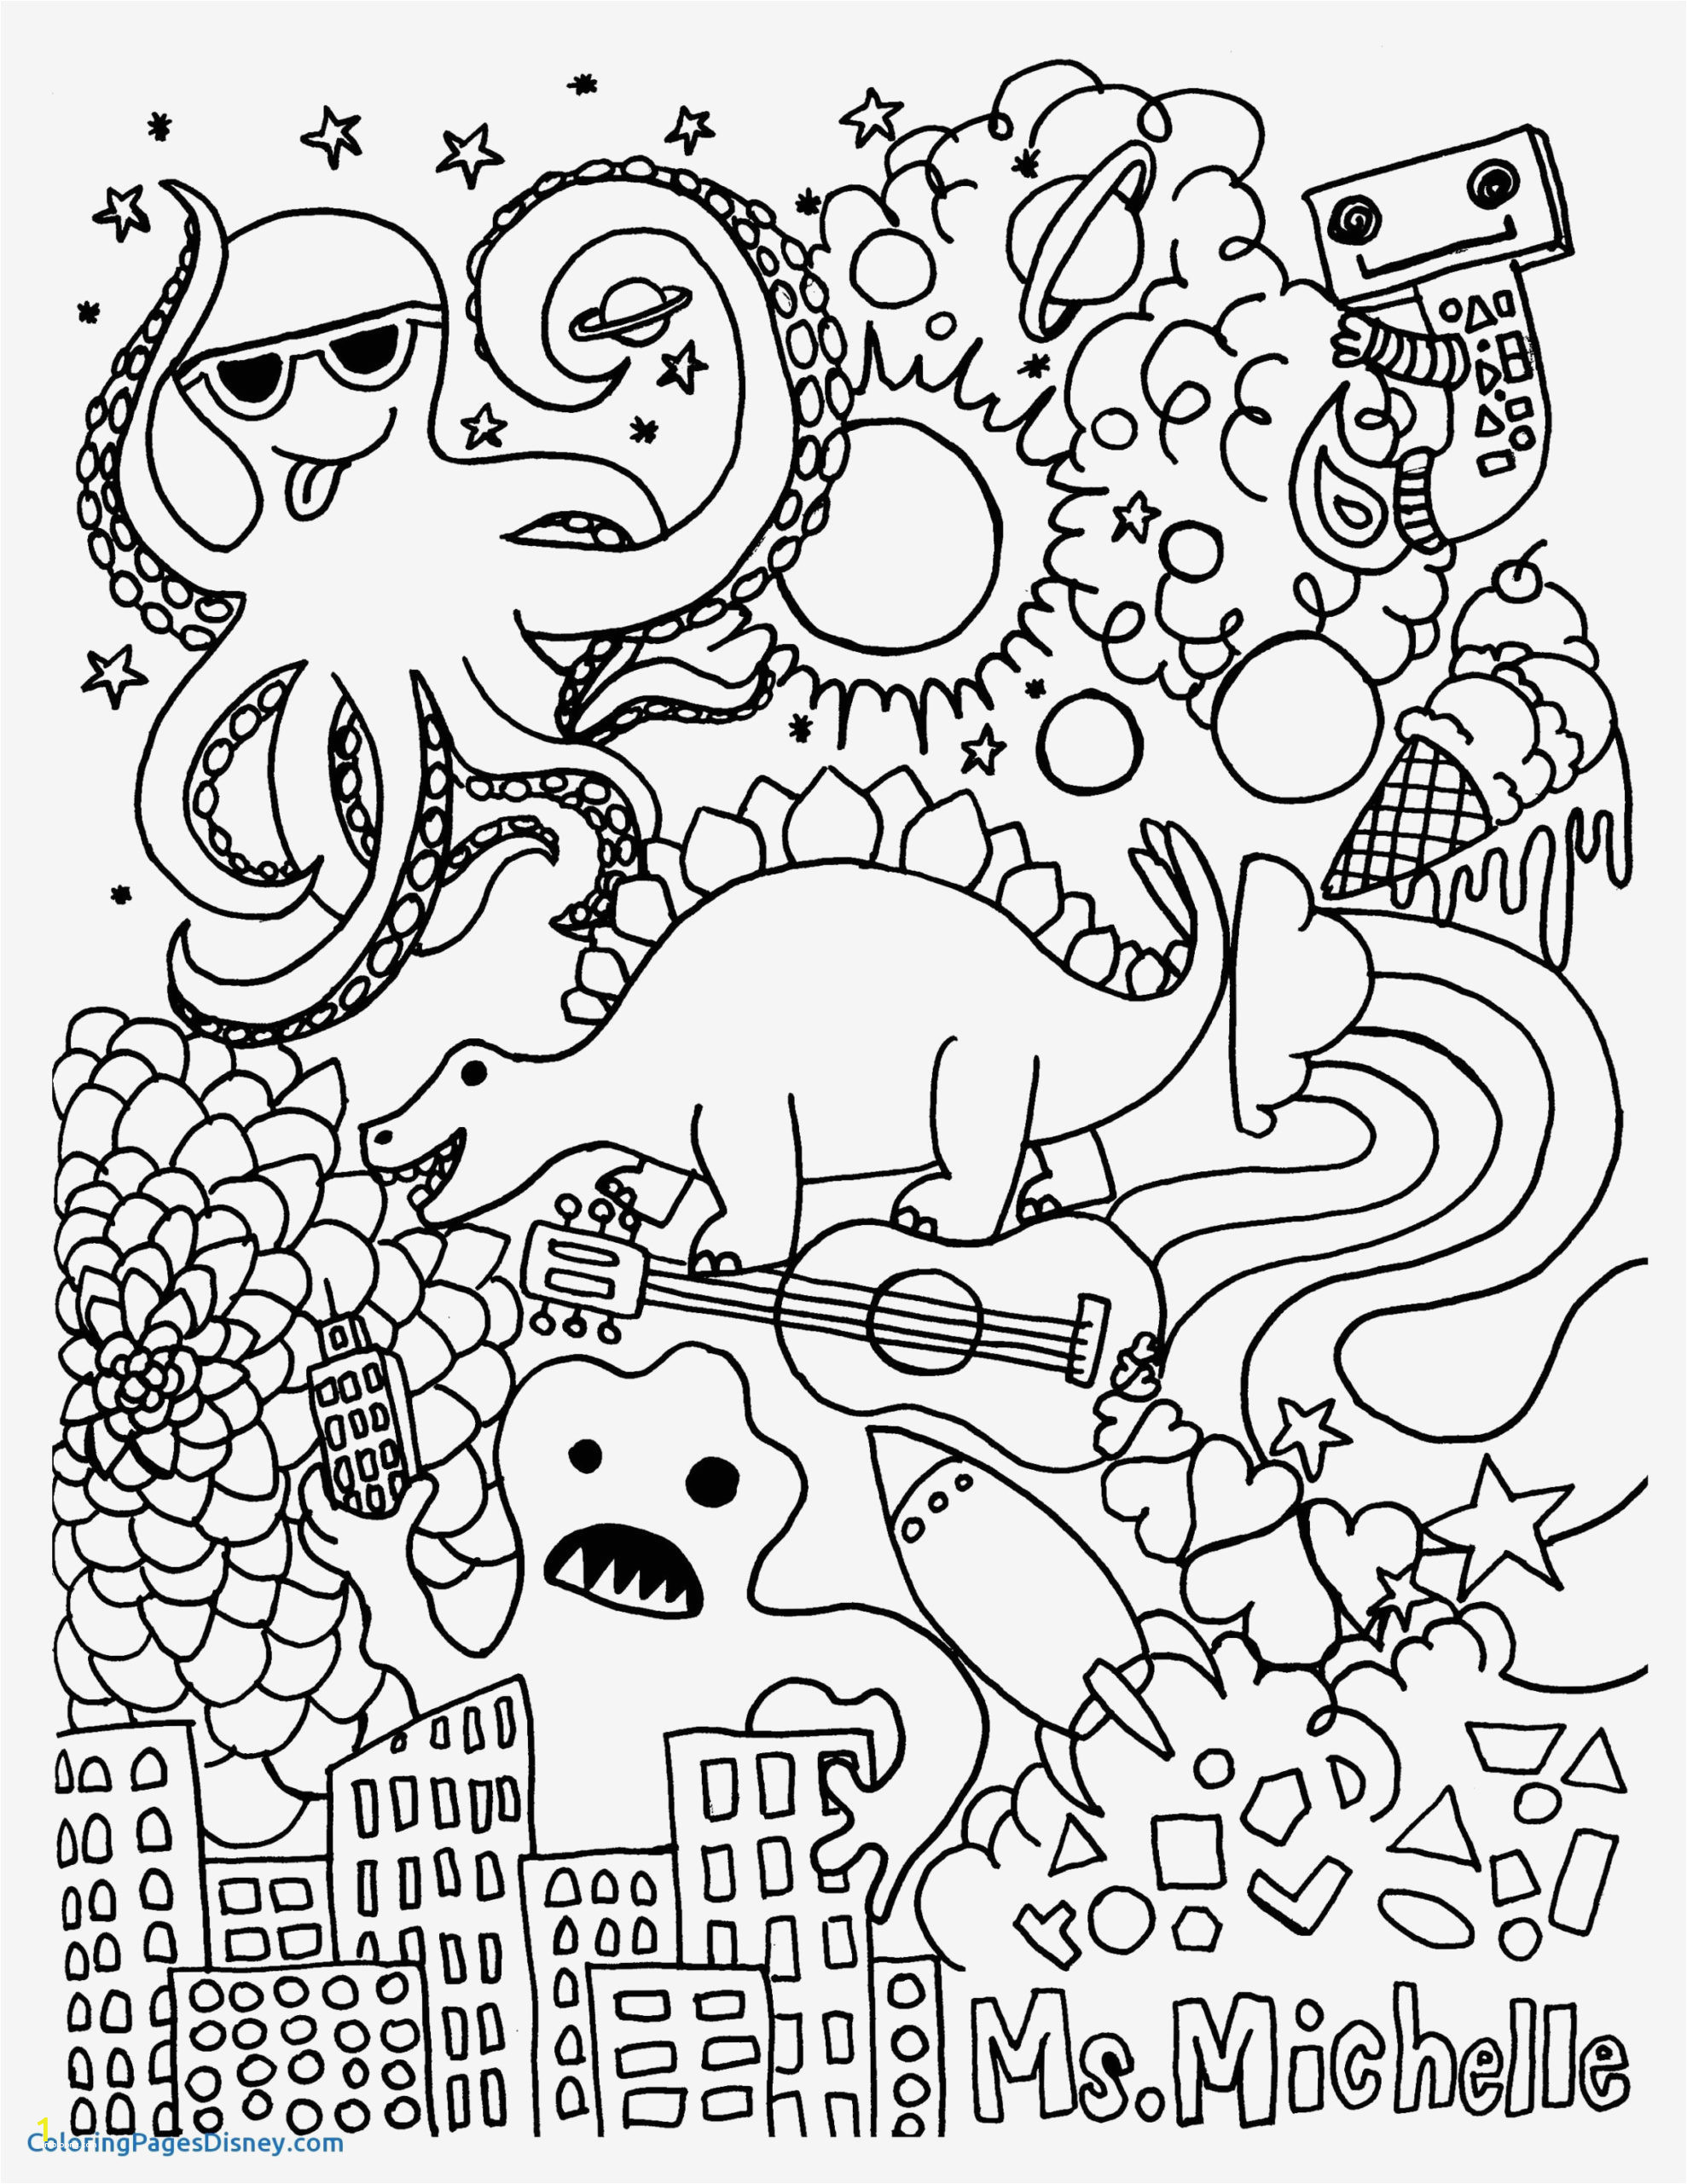 easy printable coloring pages for adults fresh coloring book coloring book most exemplary starbucks pages of easy printable coloring pages for adults